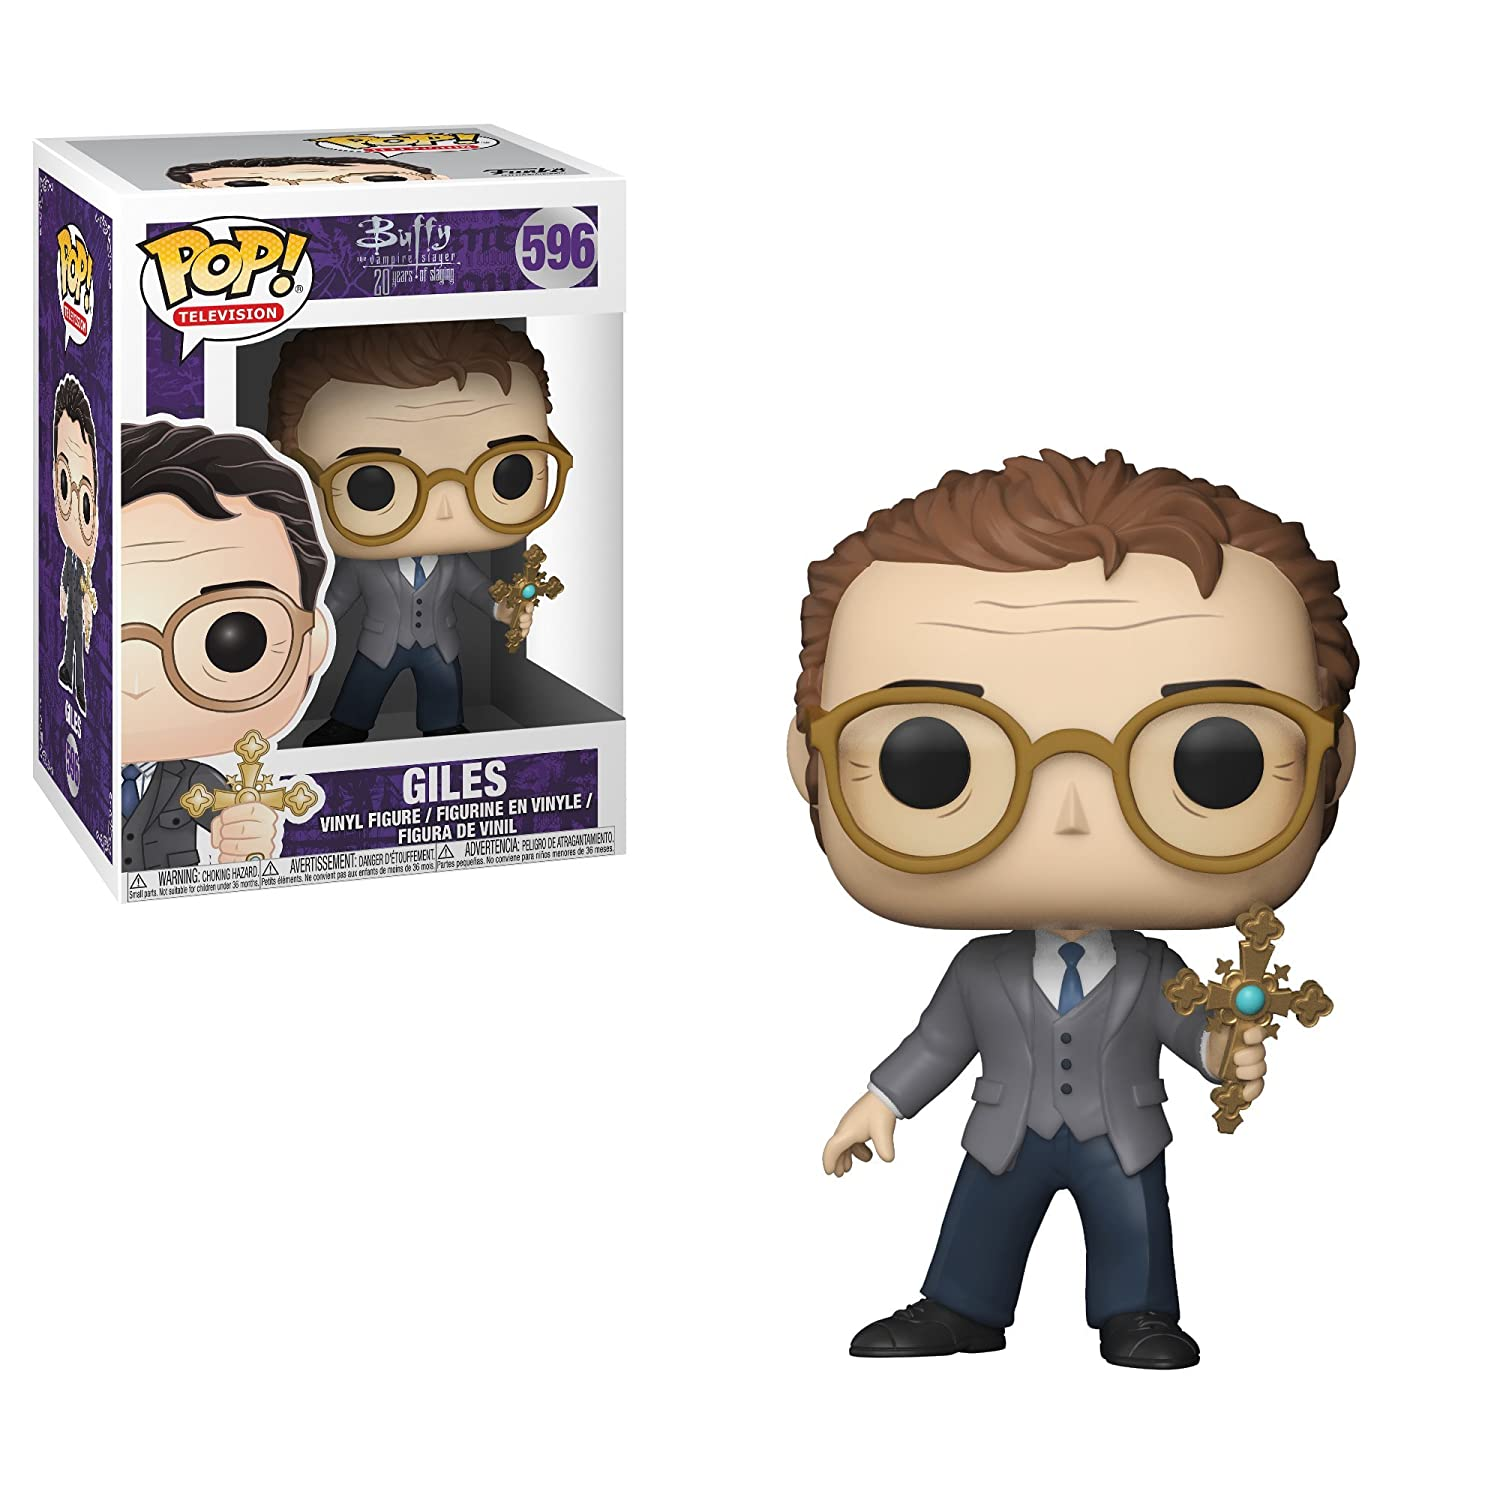 Buffy 20th-Giles Collectible Toy 25199 Accessory Toys /& Games Funko Pop TV